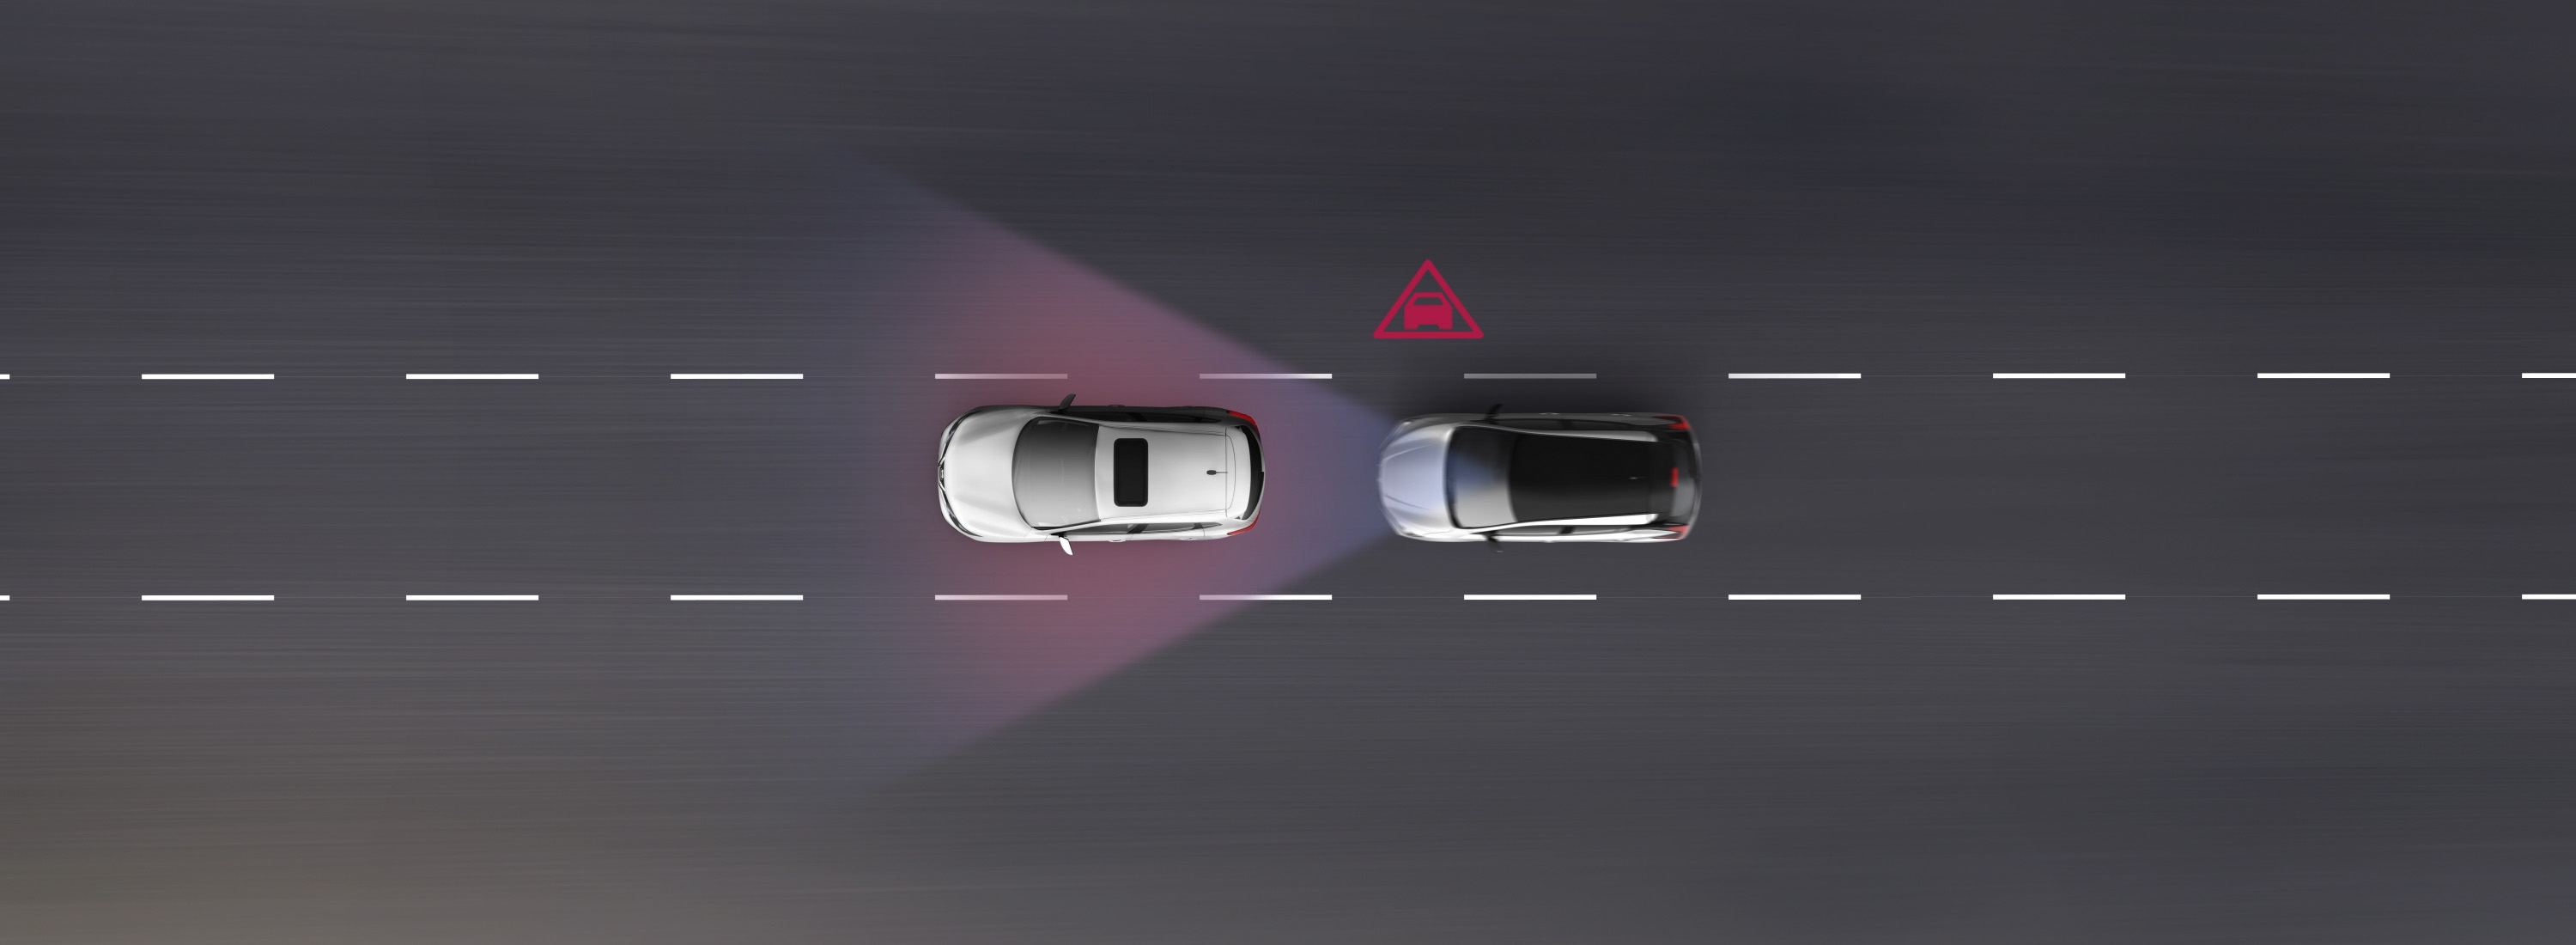 Nissan LEAF Intelligent Emergency Braking animation